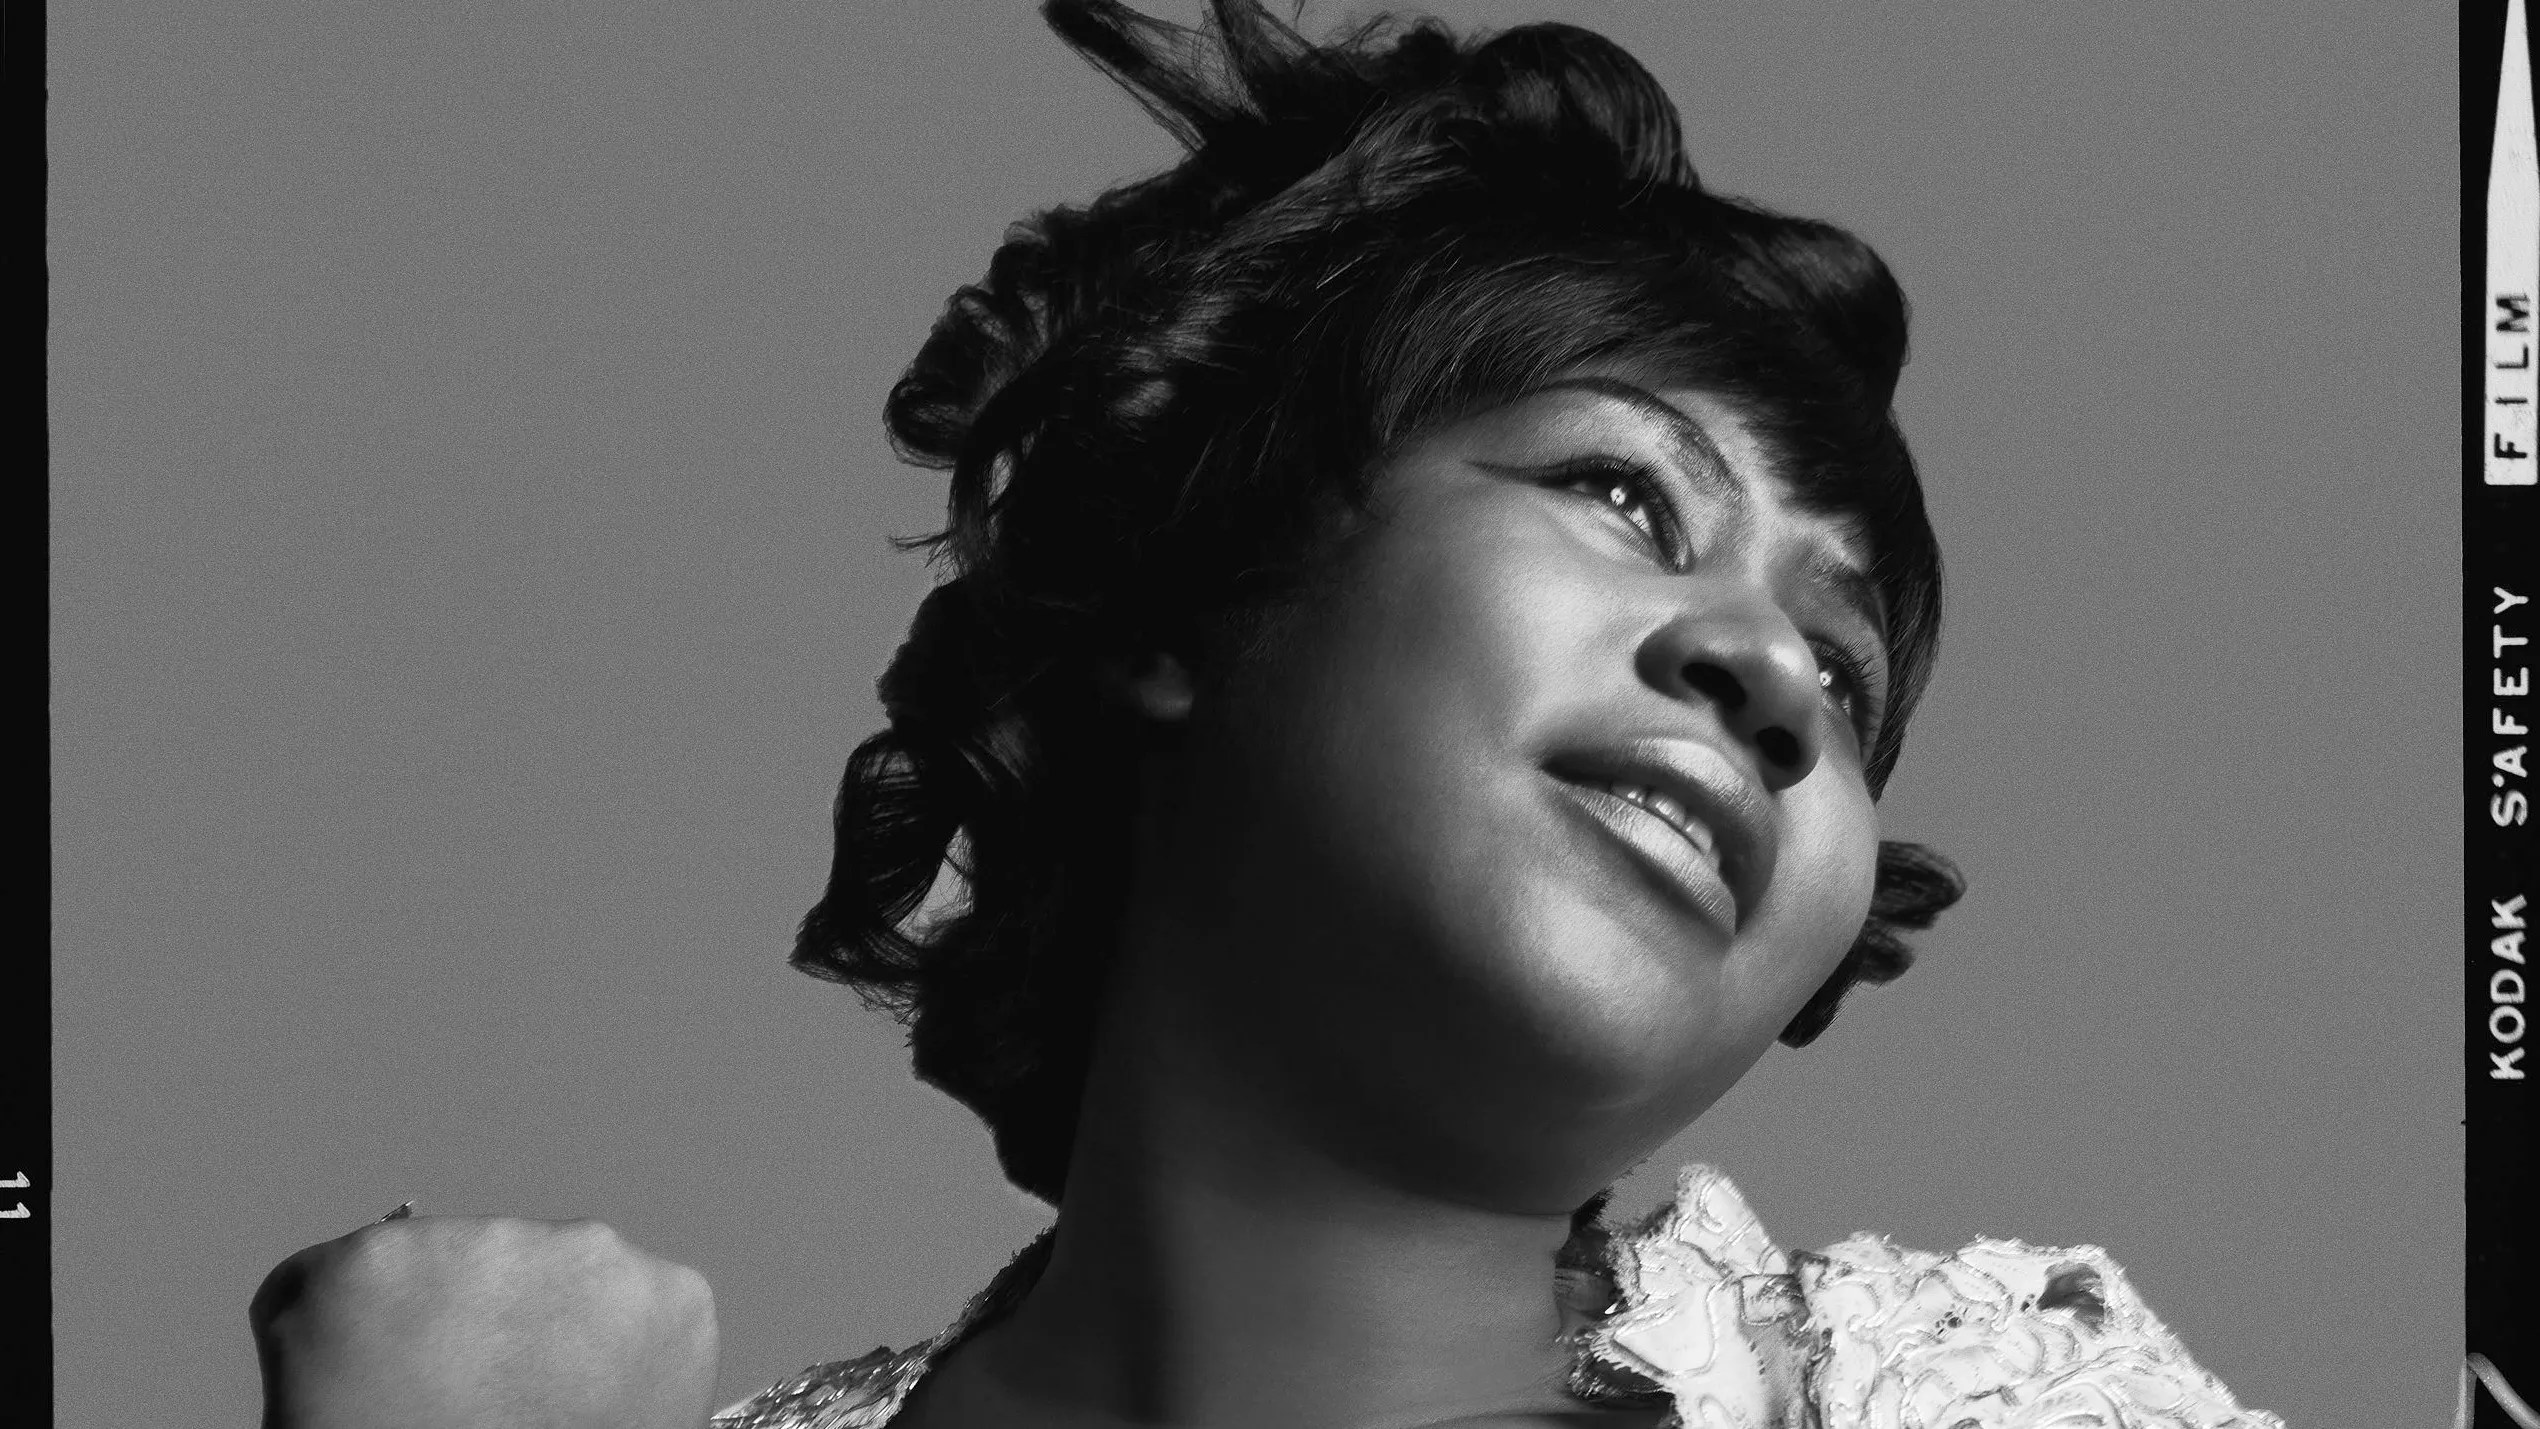 Sep 08, 2002· 8 mile: Aretha Franklin S American Soul The New Yorker